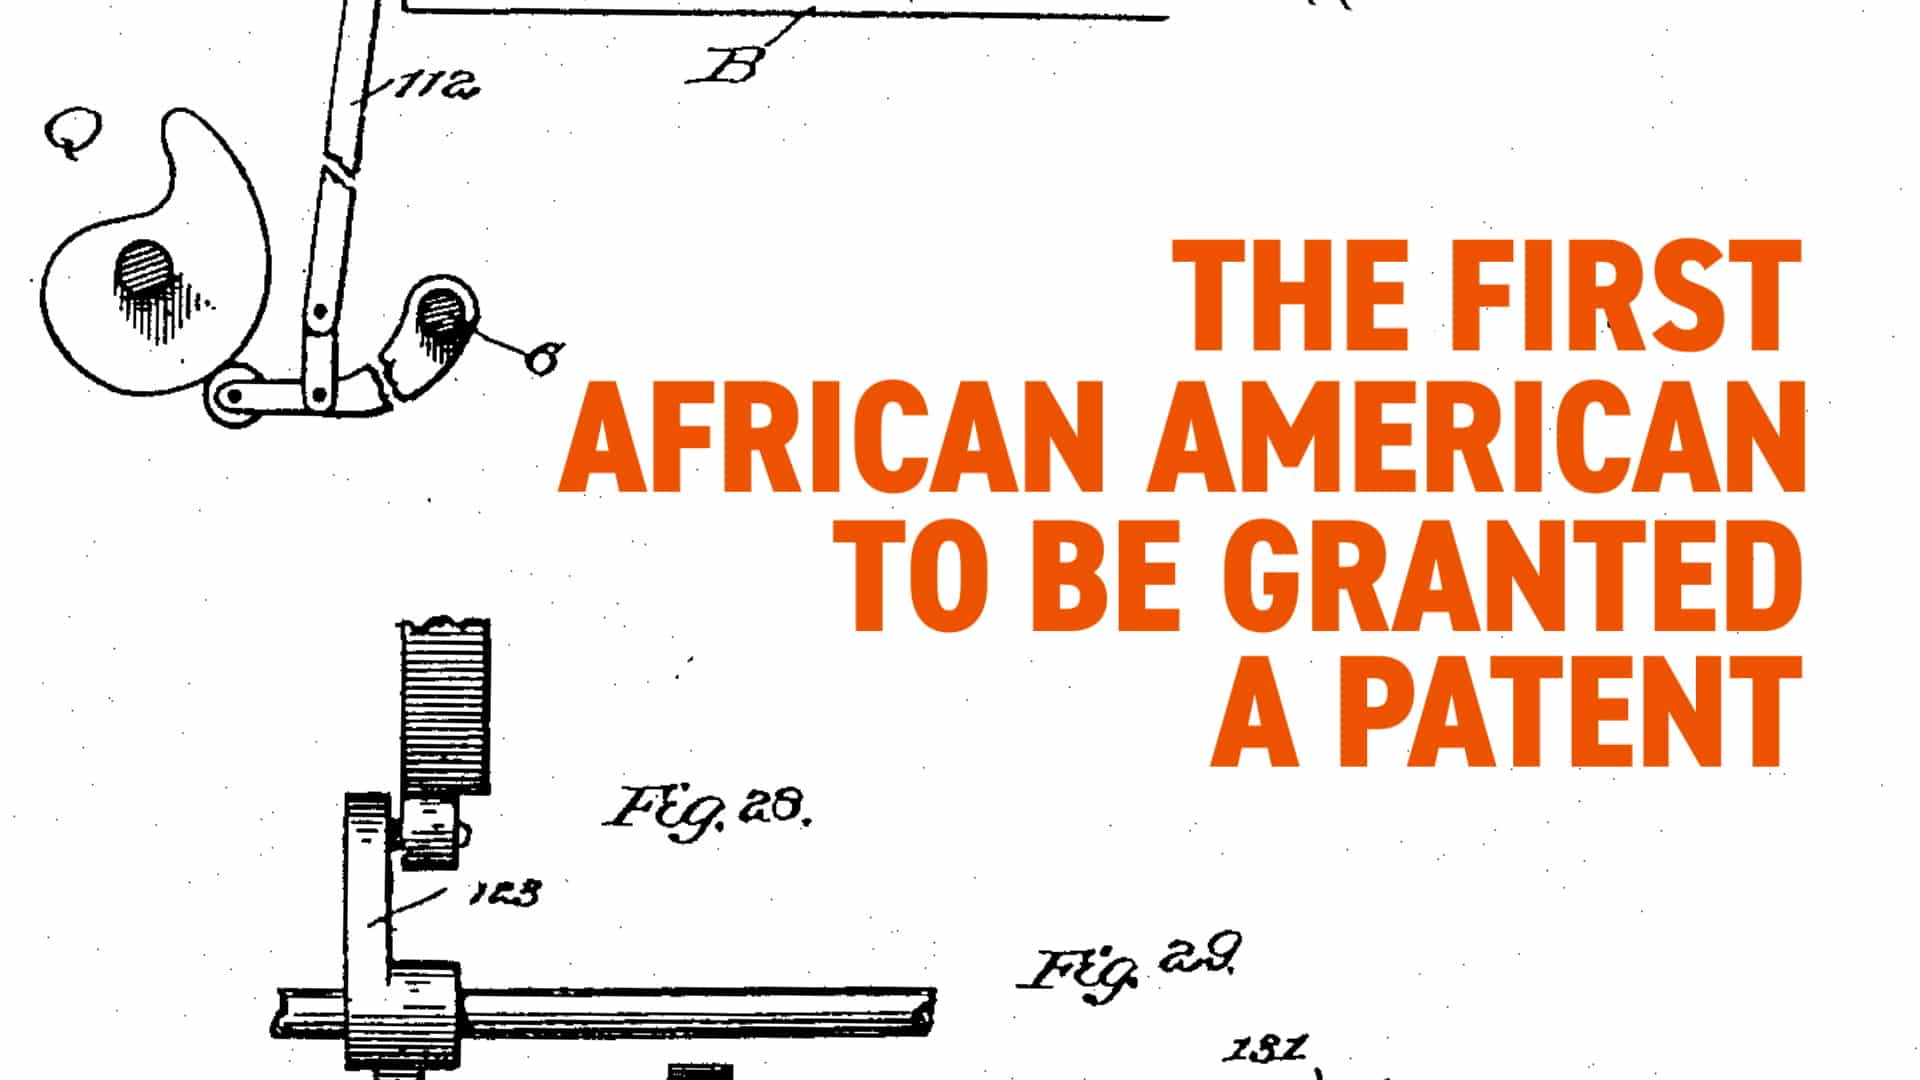 First African American Patent Holders